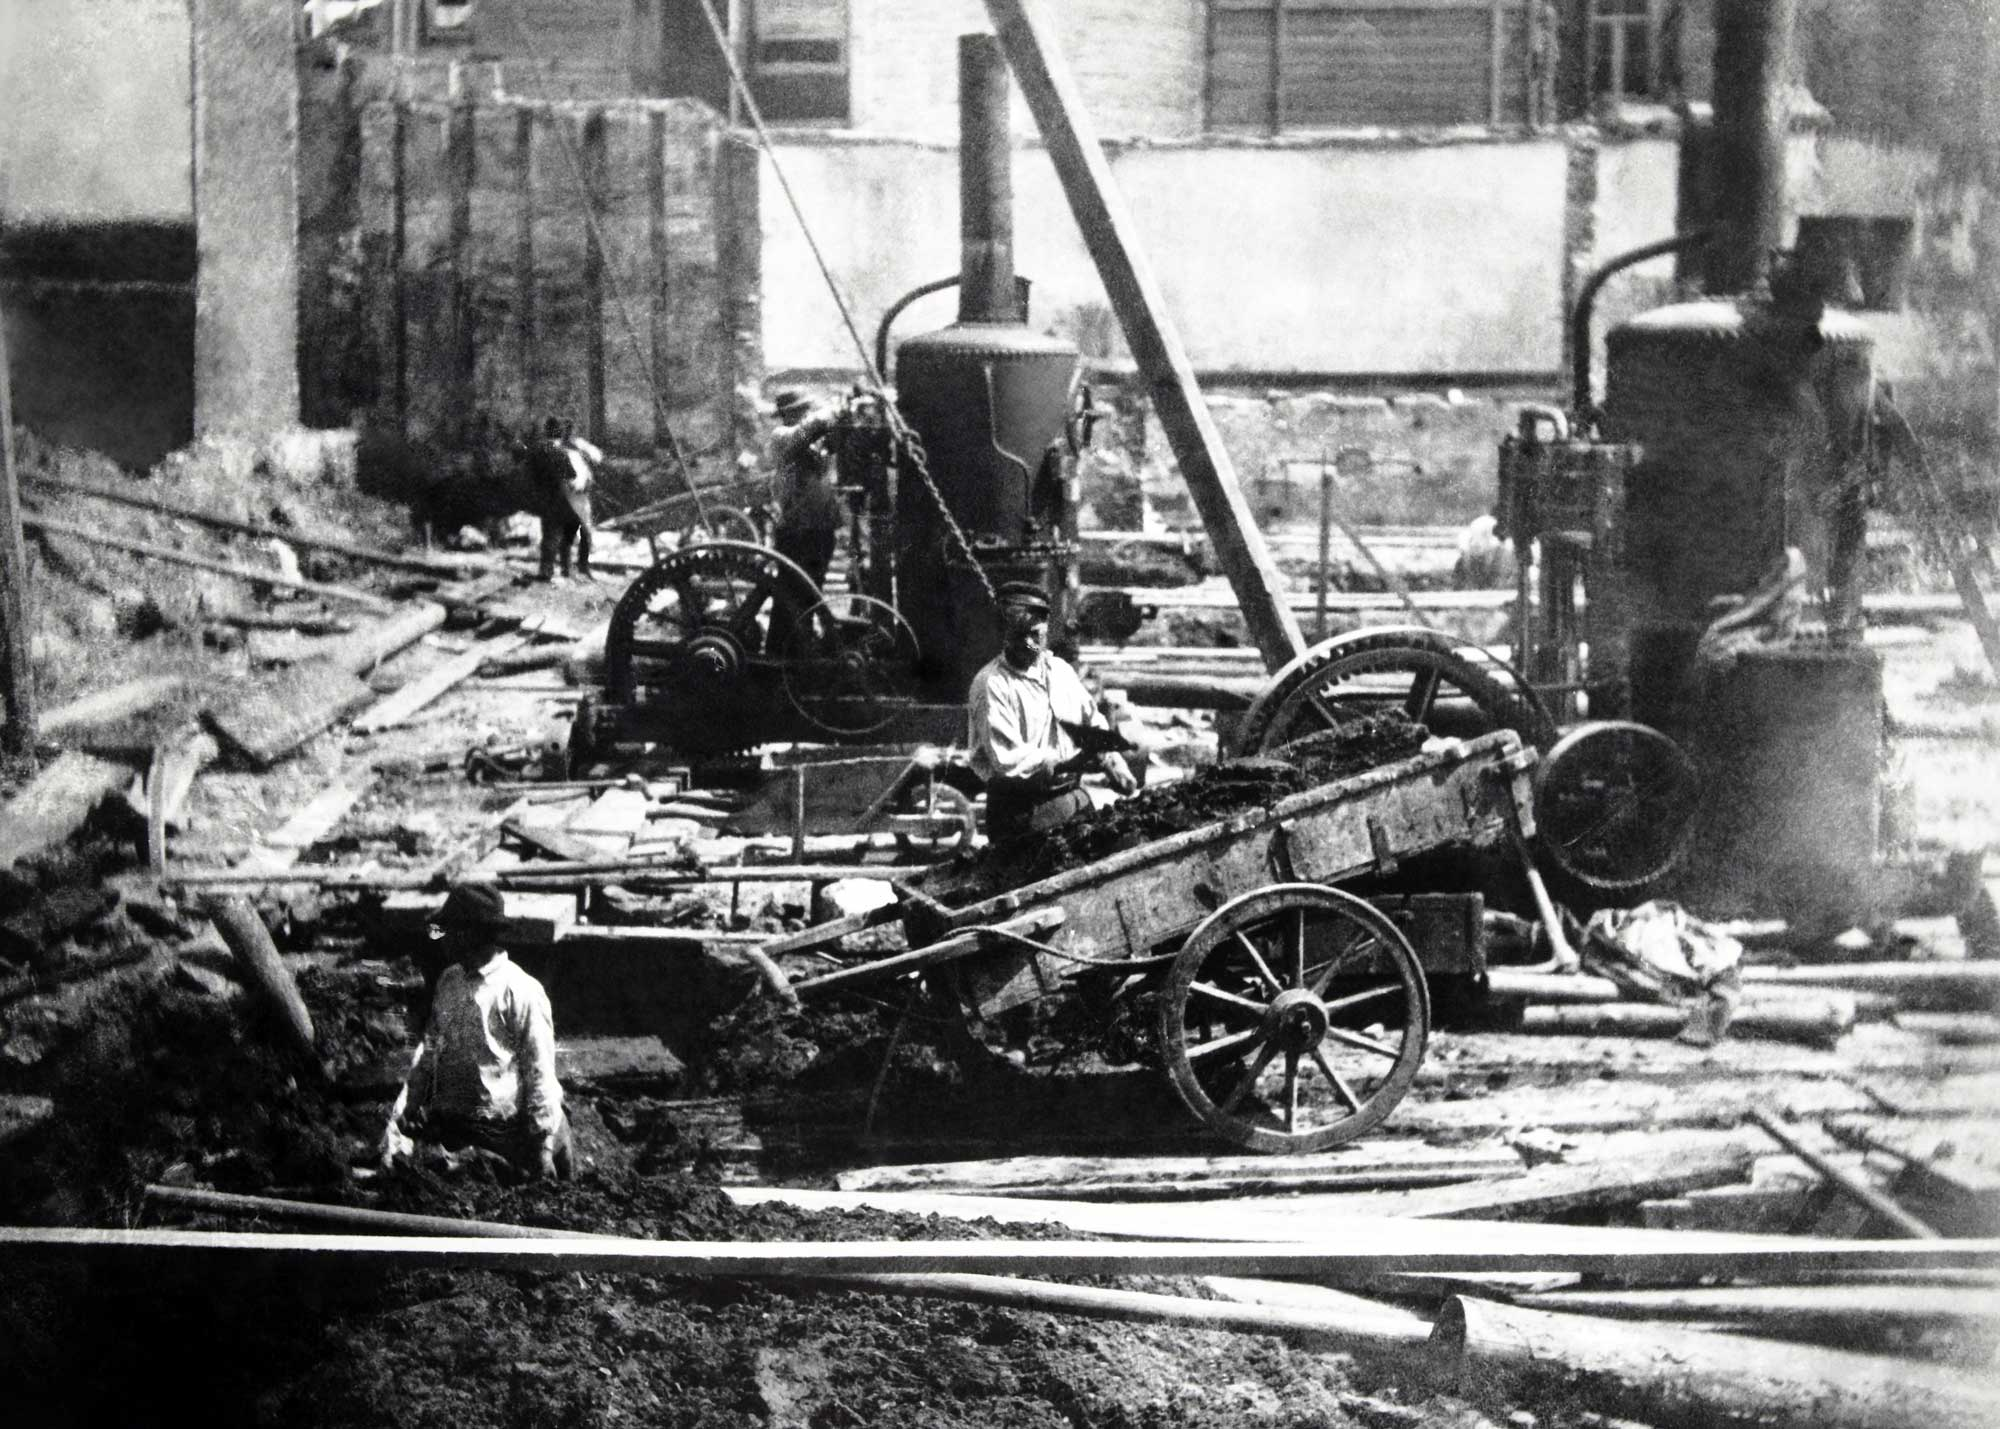 Workers at the construction site of the Municipal Bath and Swimming Facility at the Heiligeweg.